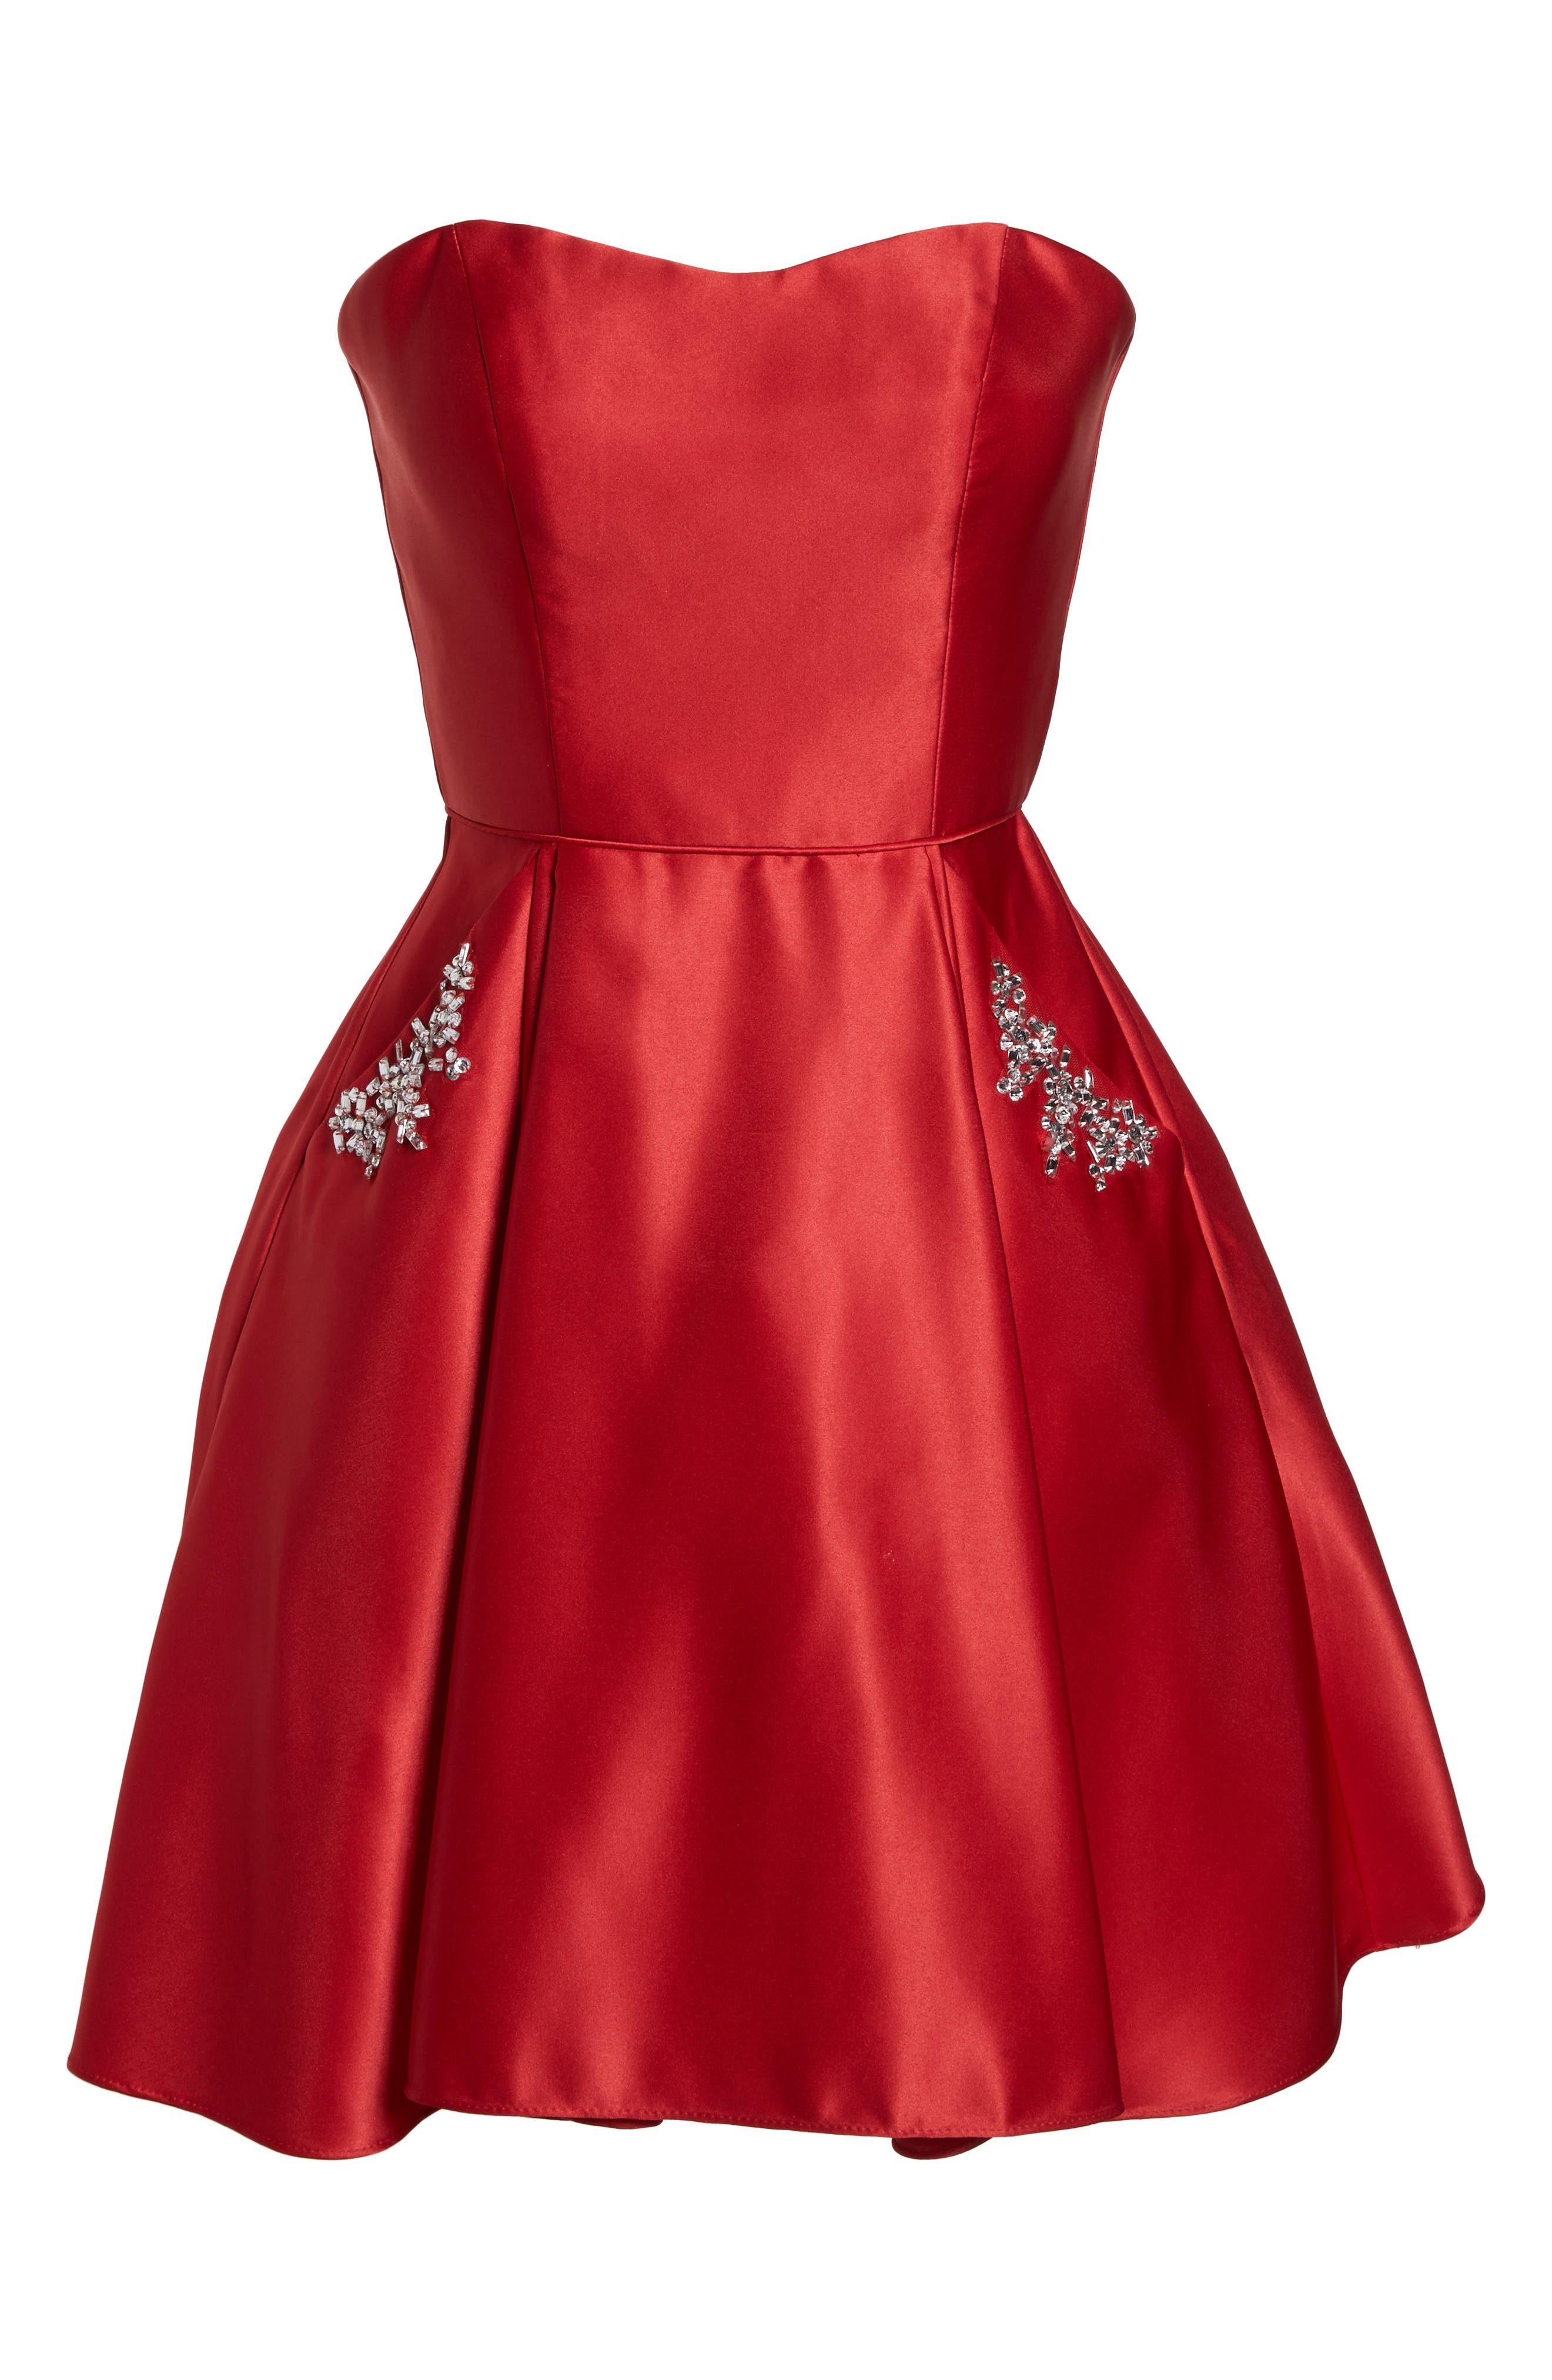 Strapless Satin Fit & Flare Party Dress,                             Alternate thumbnail 6, color,                             RED